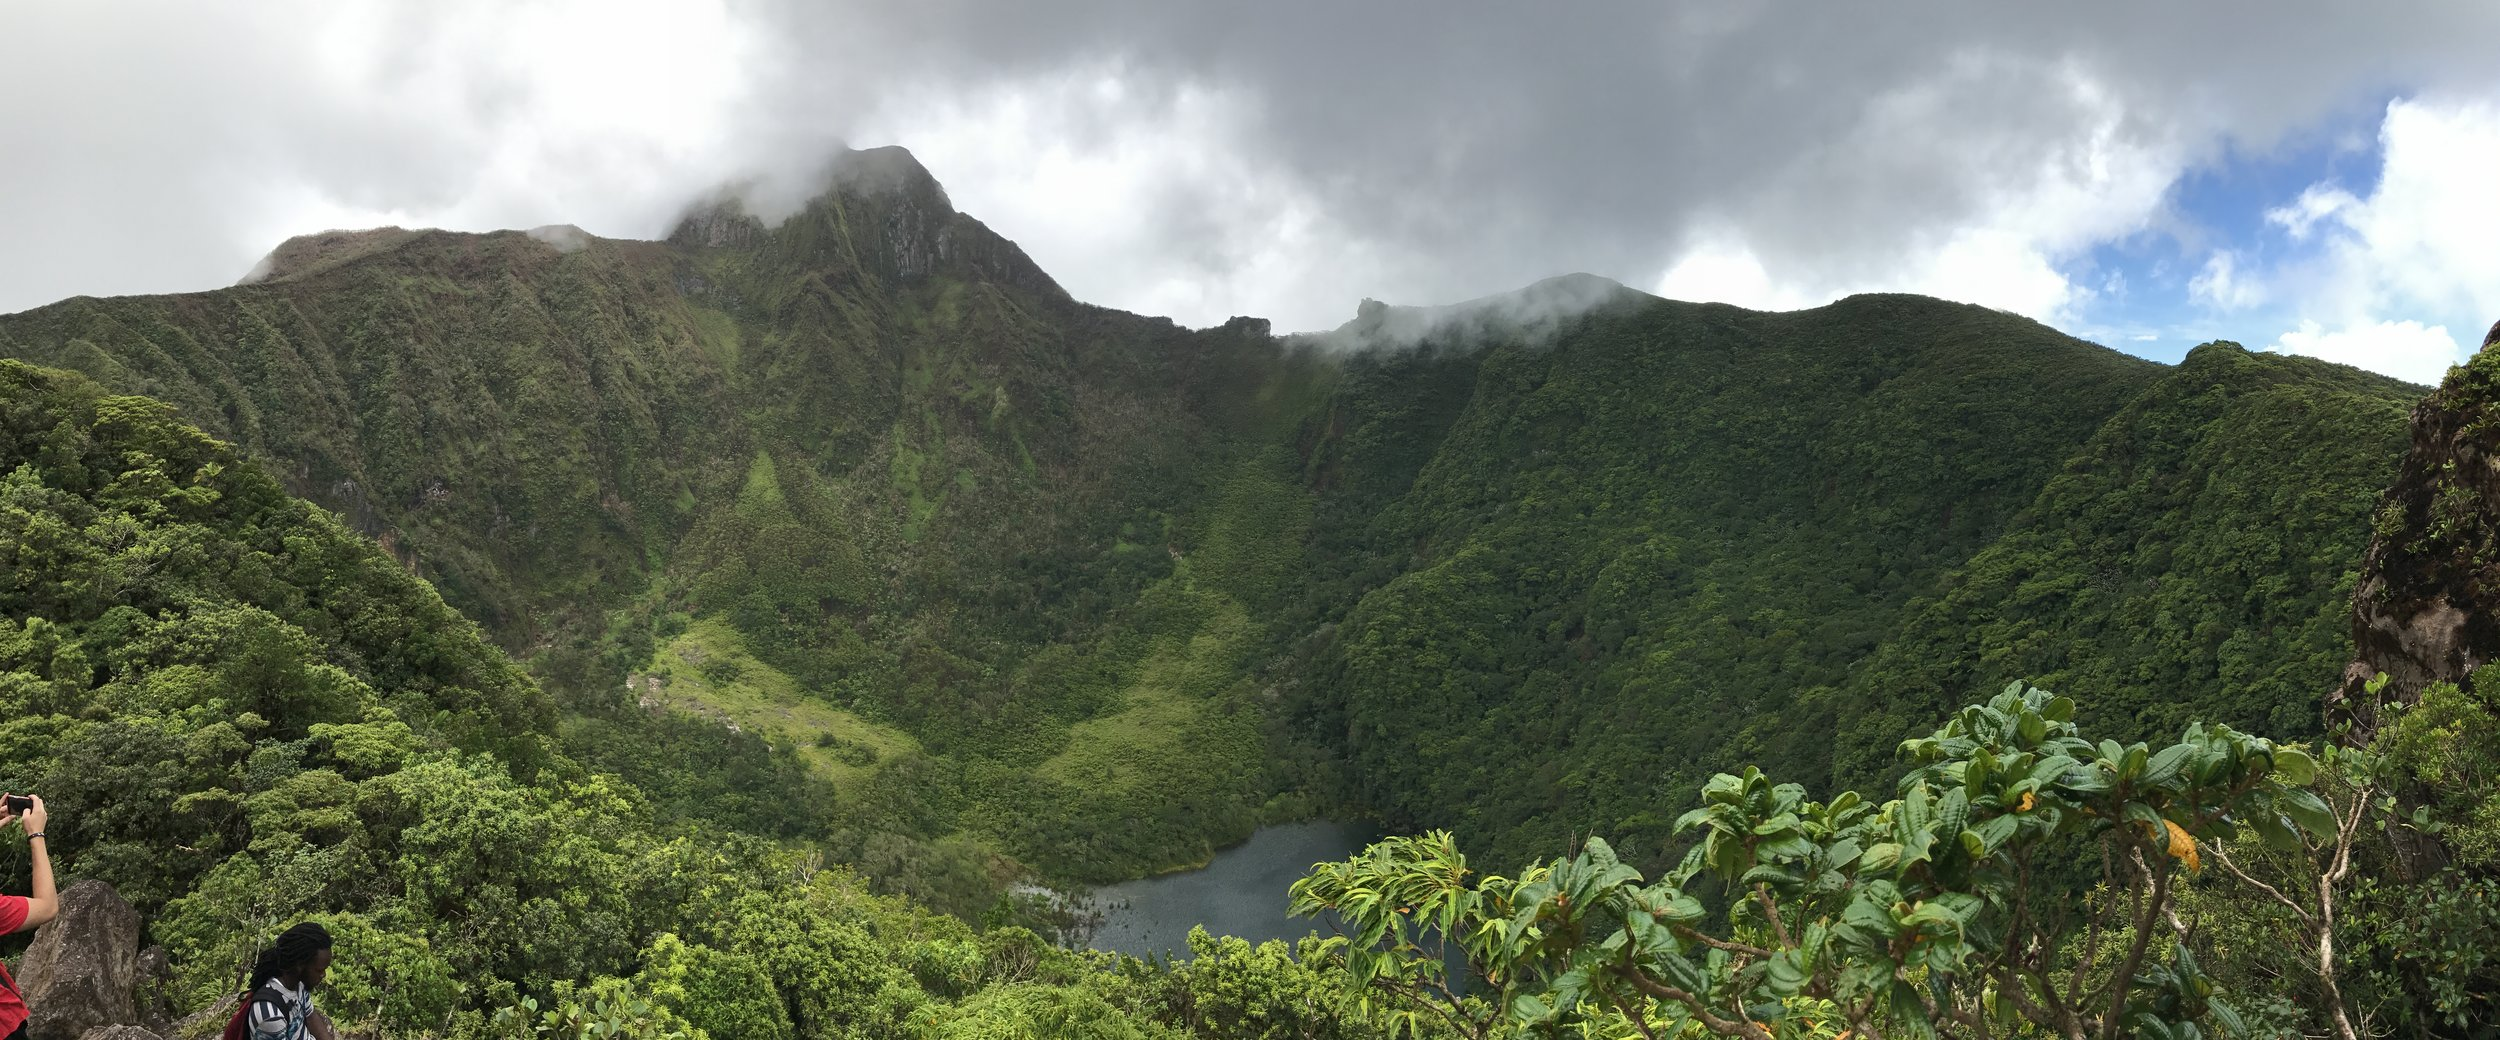 CRATER OF MOUNT LIAMUIGA, sT kITTS